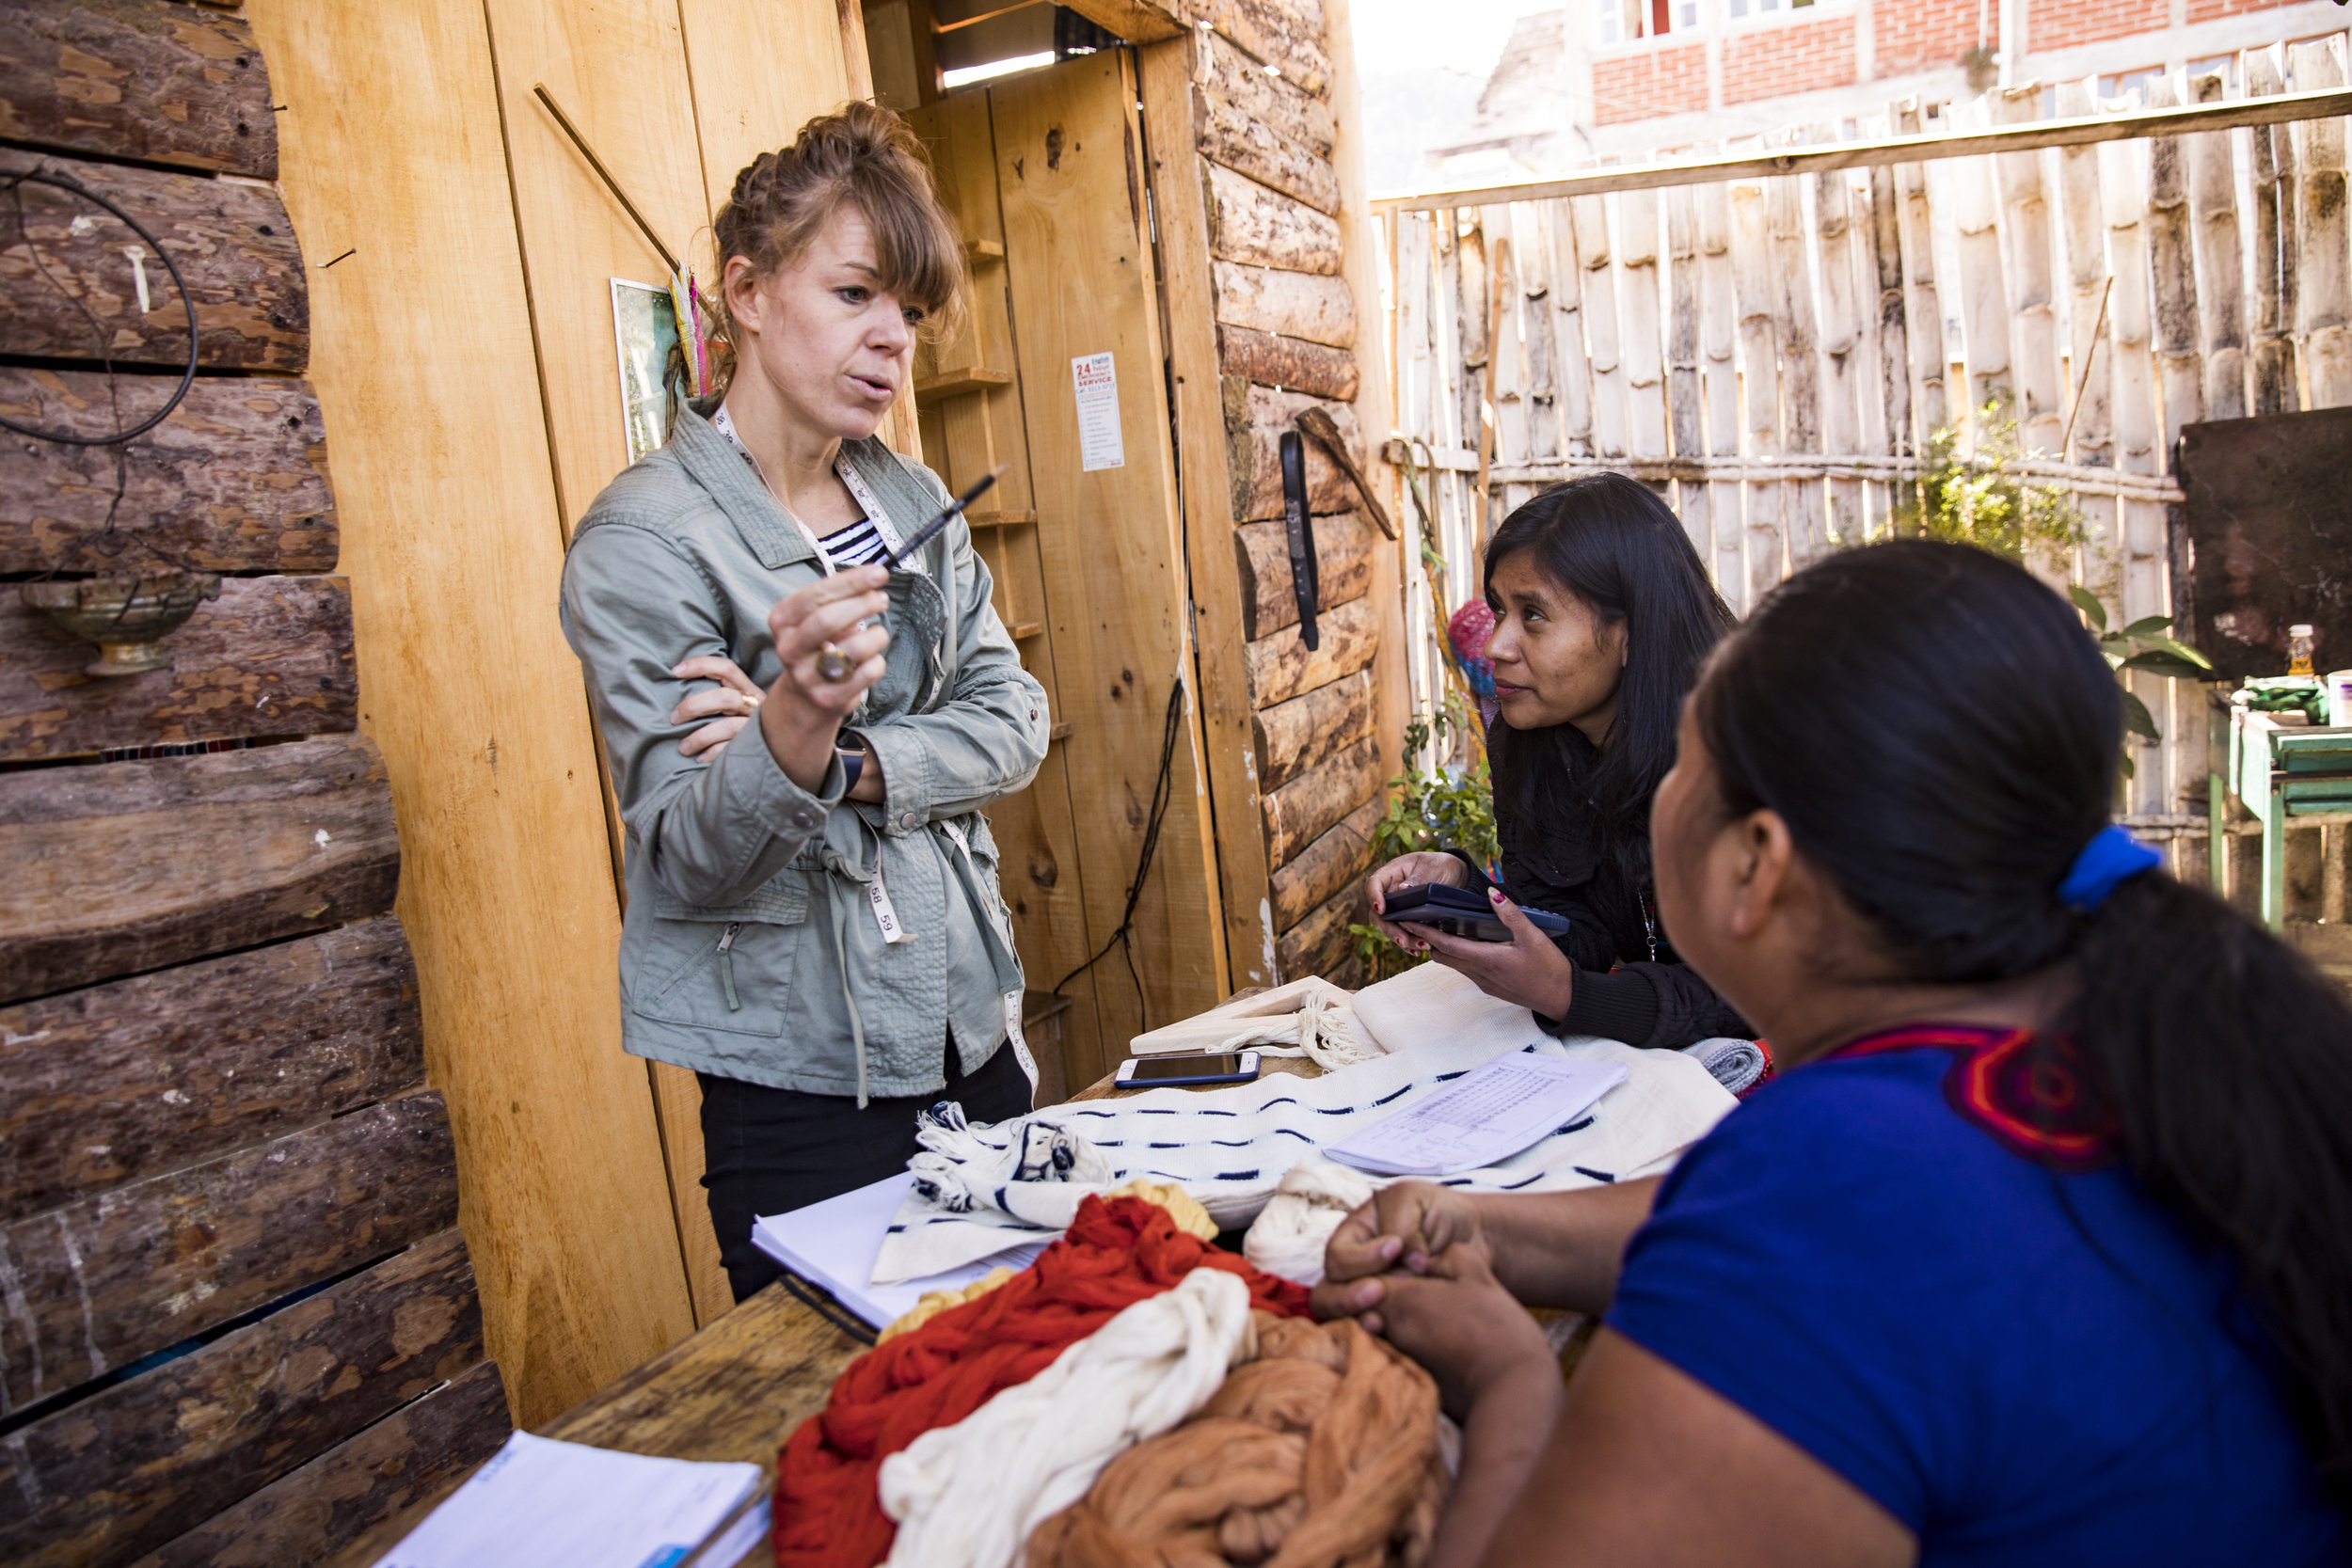 Founder Amanda works with artisans Amalia and Blanca on a new napkin design. Stay tuned!